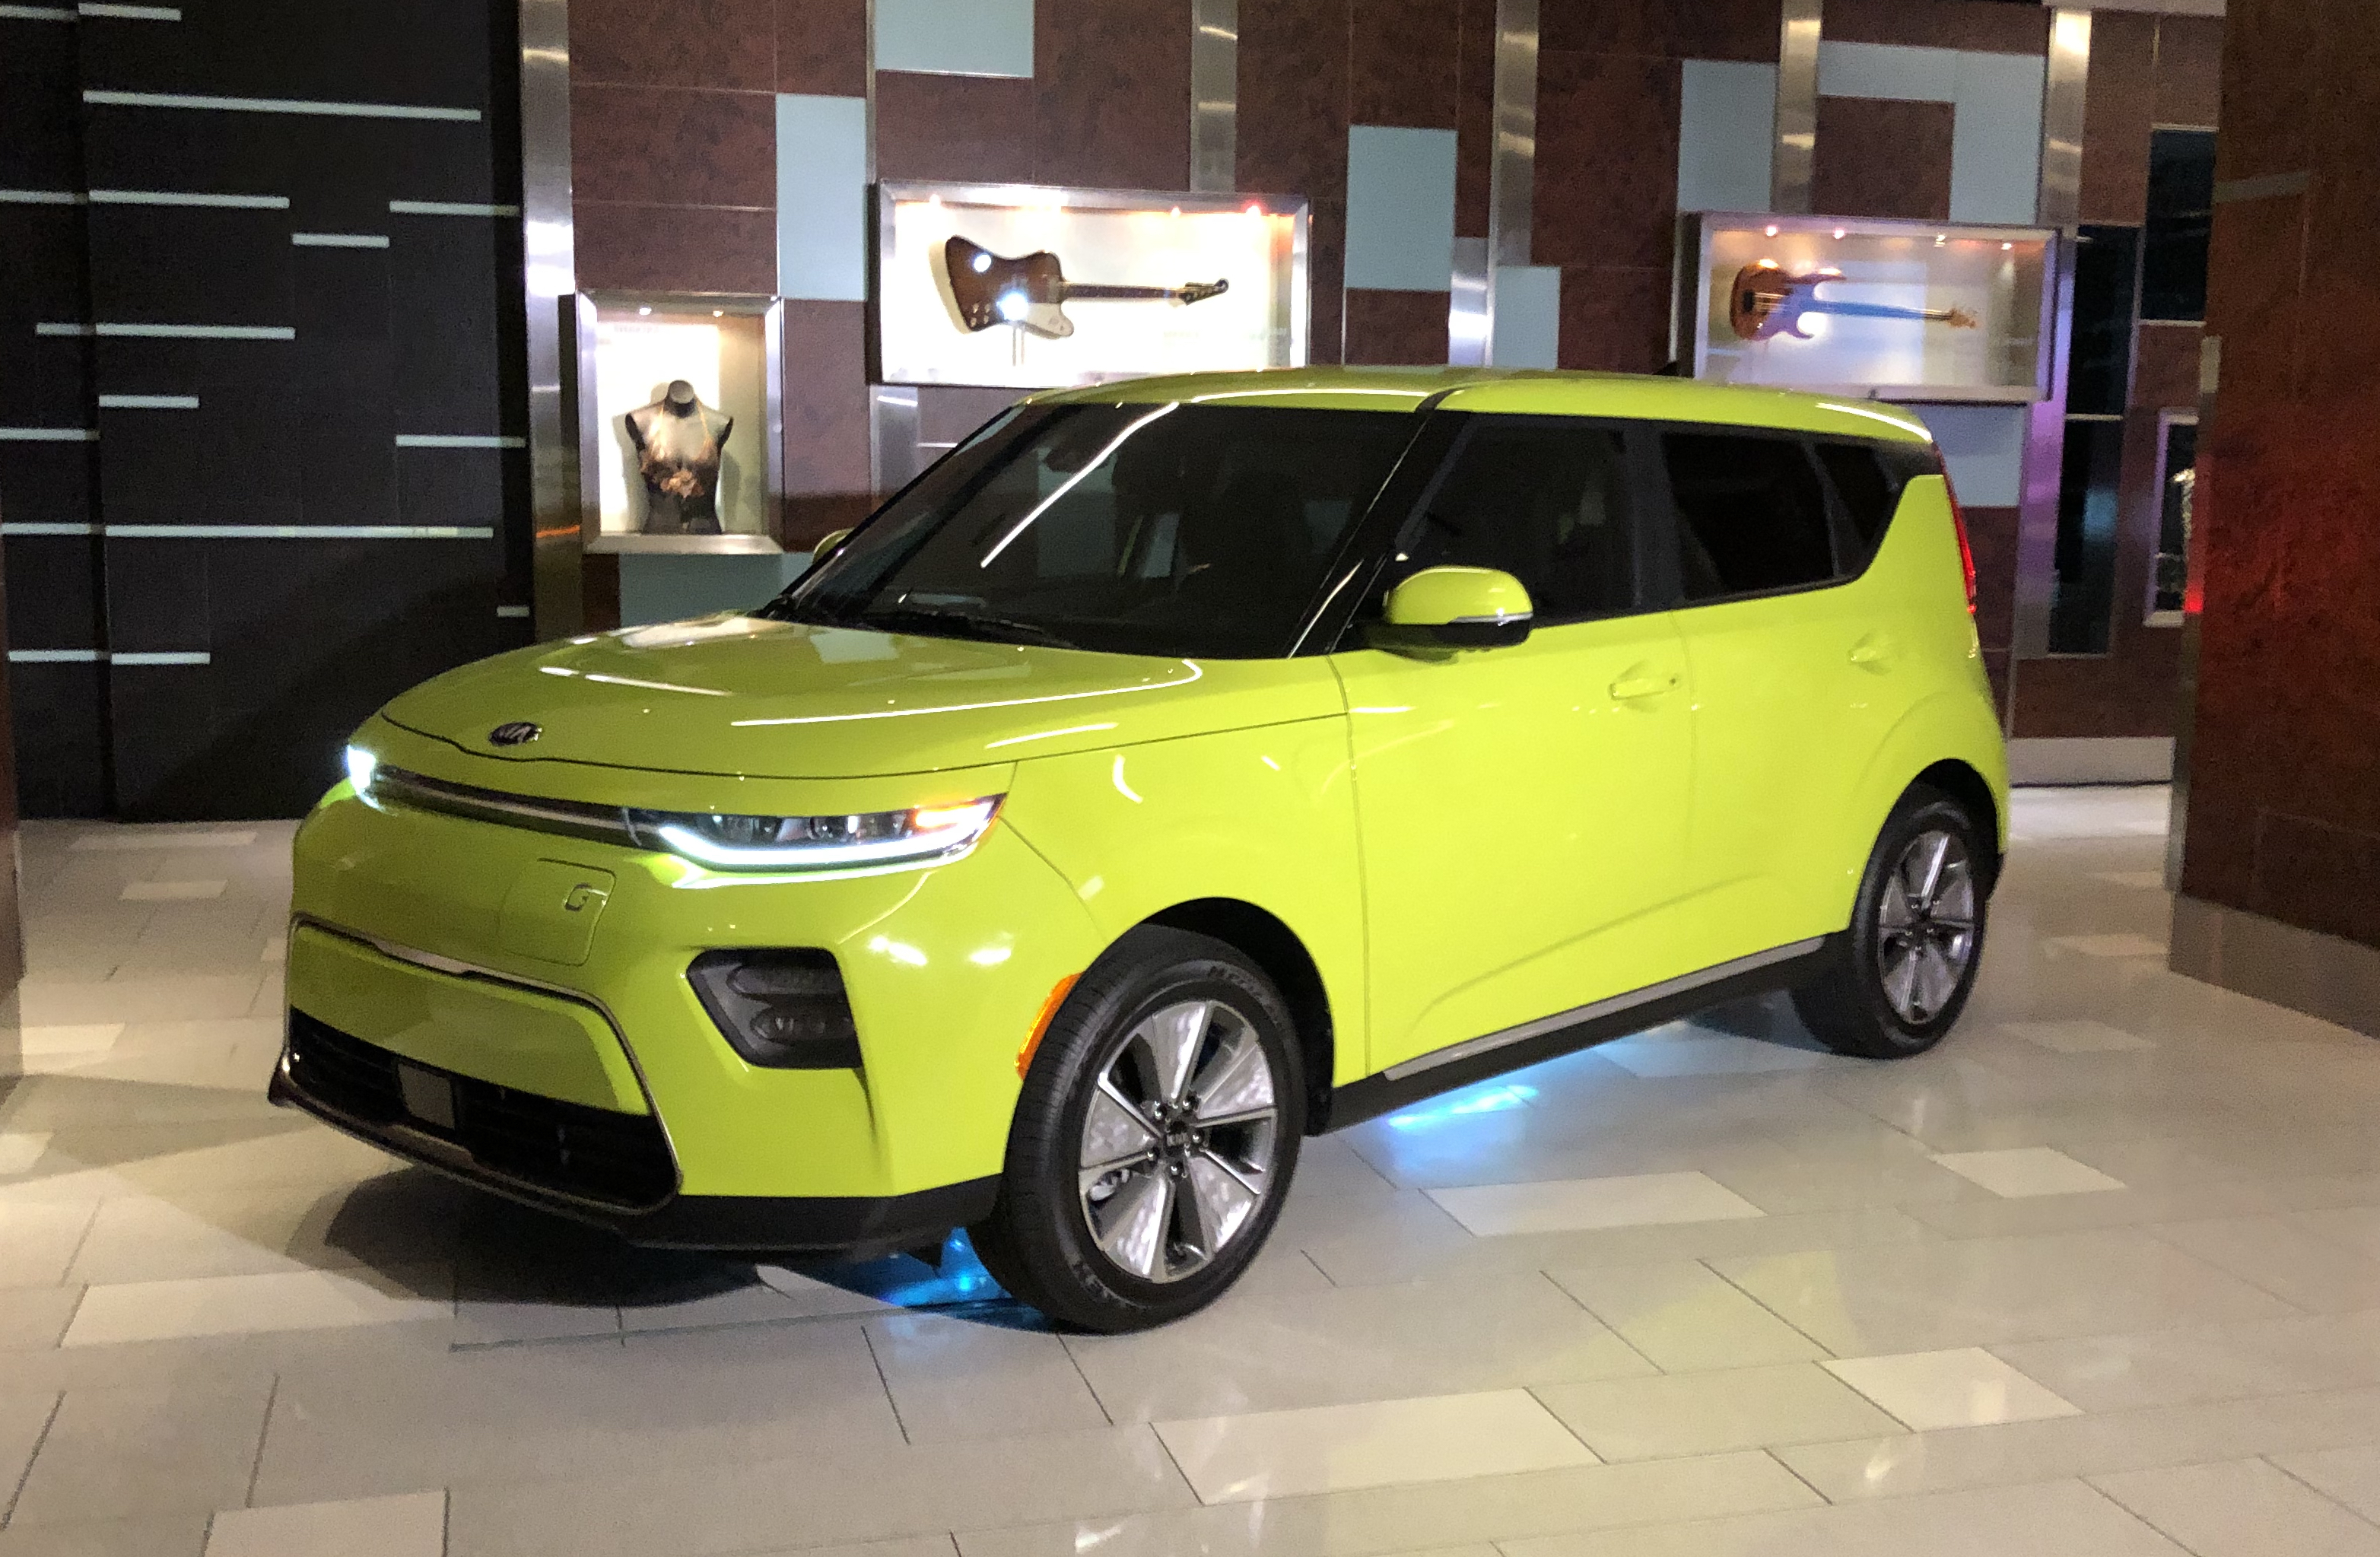 We'll have to wait until later this summer to try out the Soul EV.